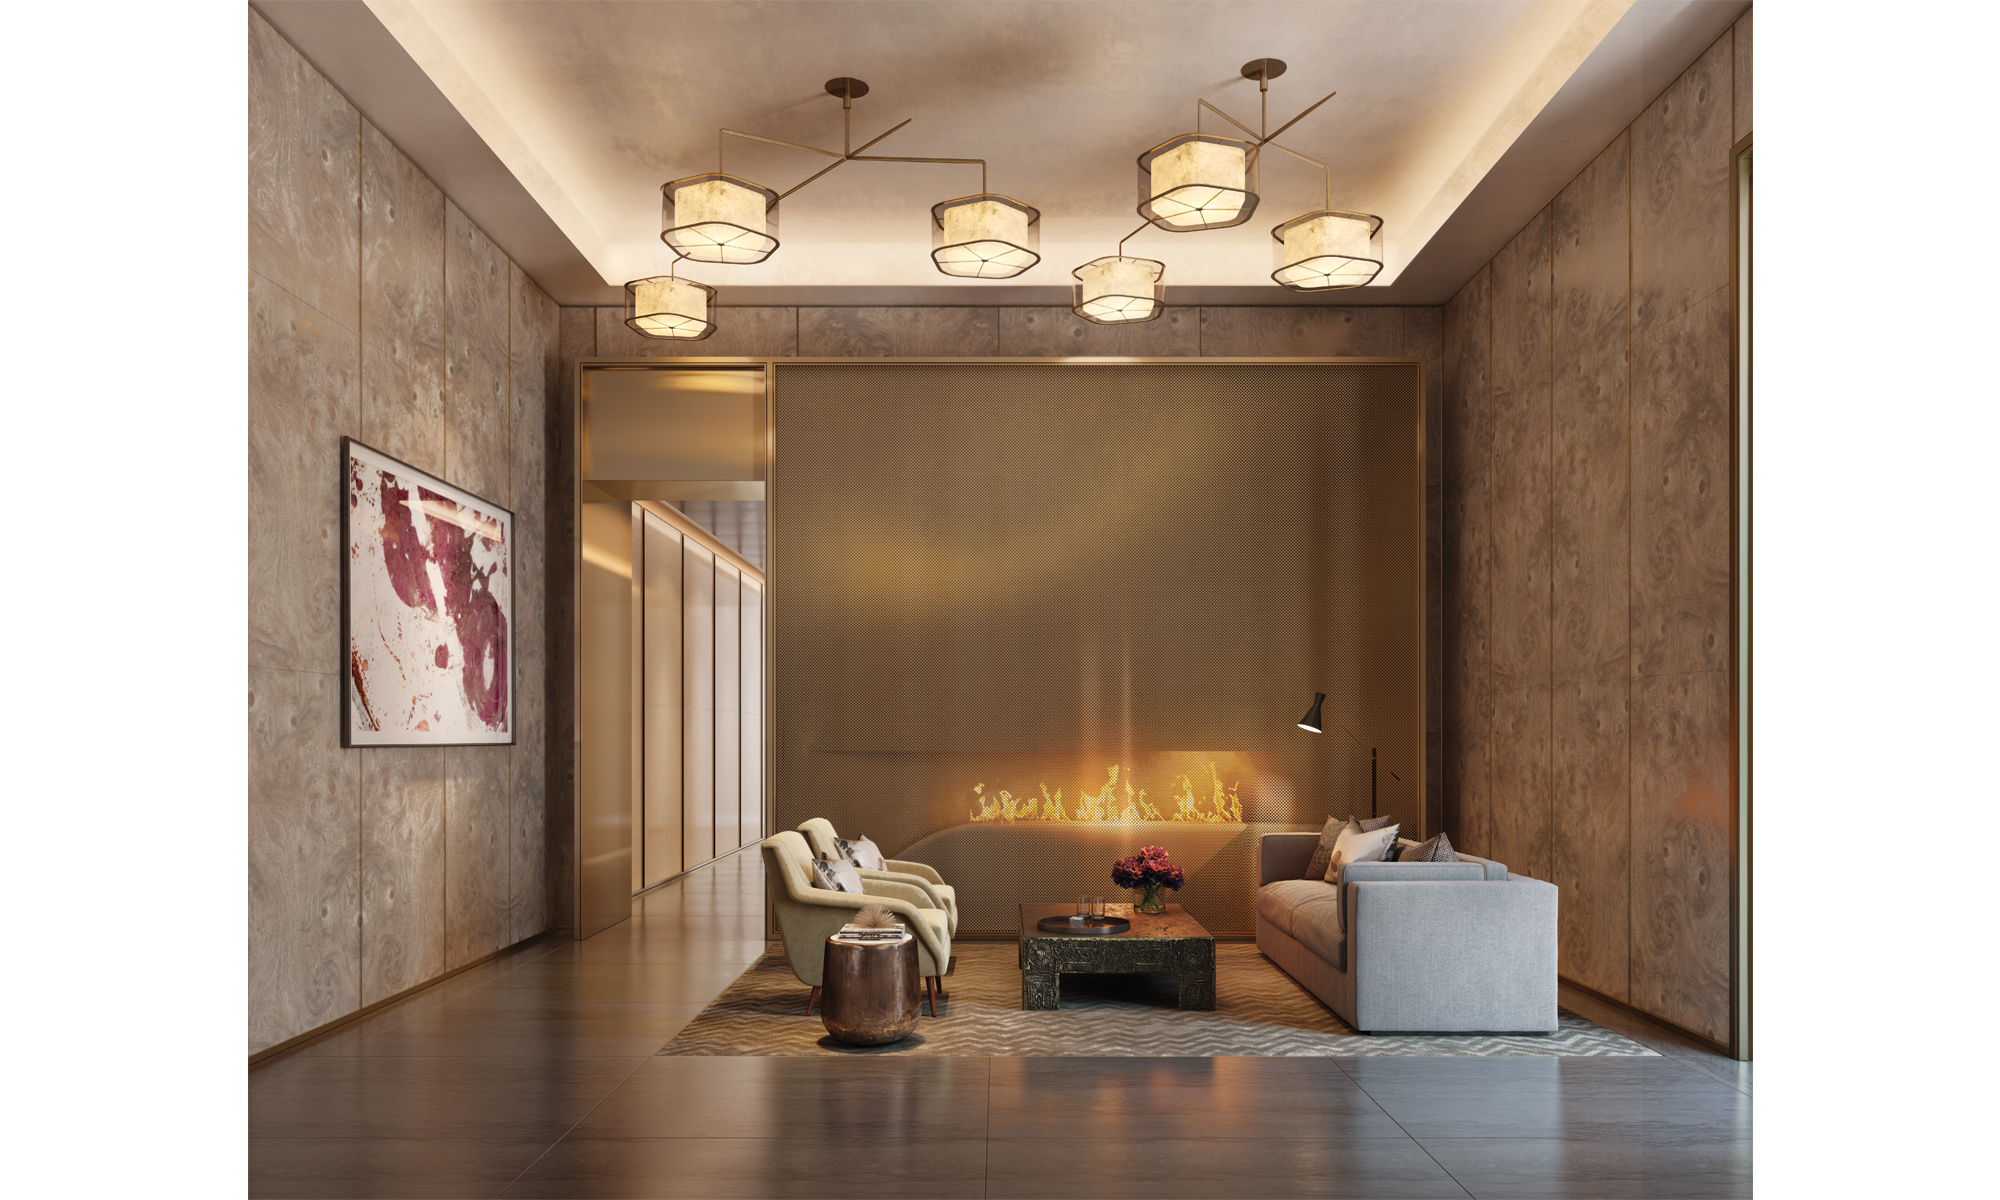 Artist's impression of the reception area with feature fireplace and seating area.